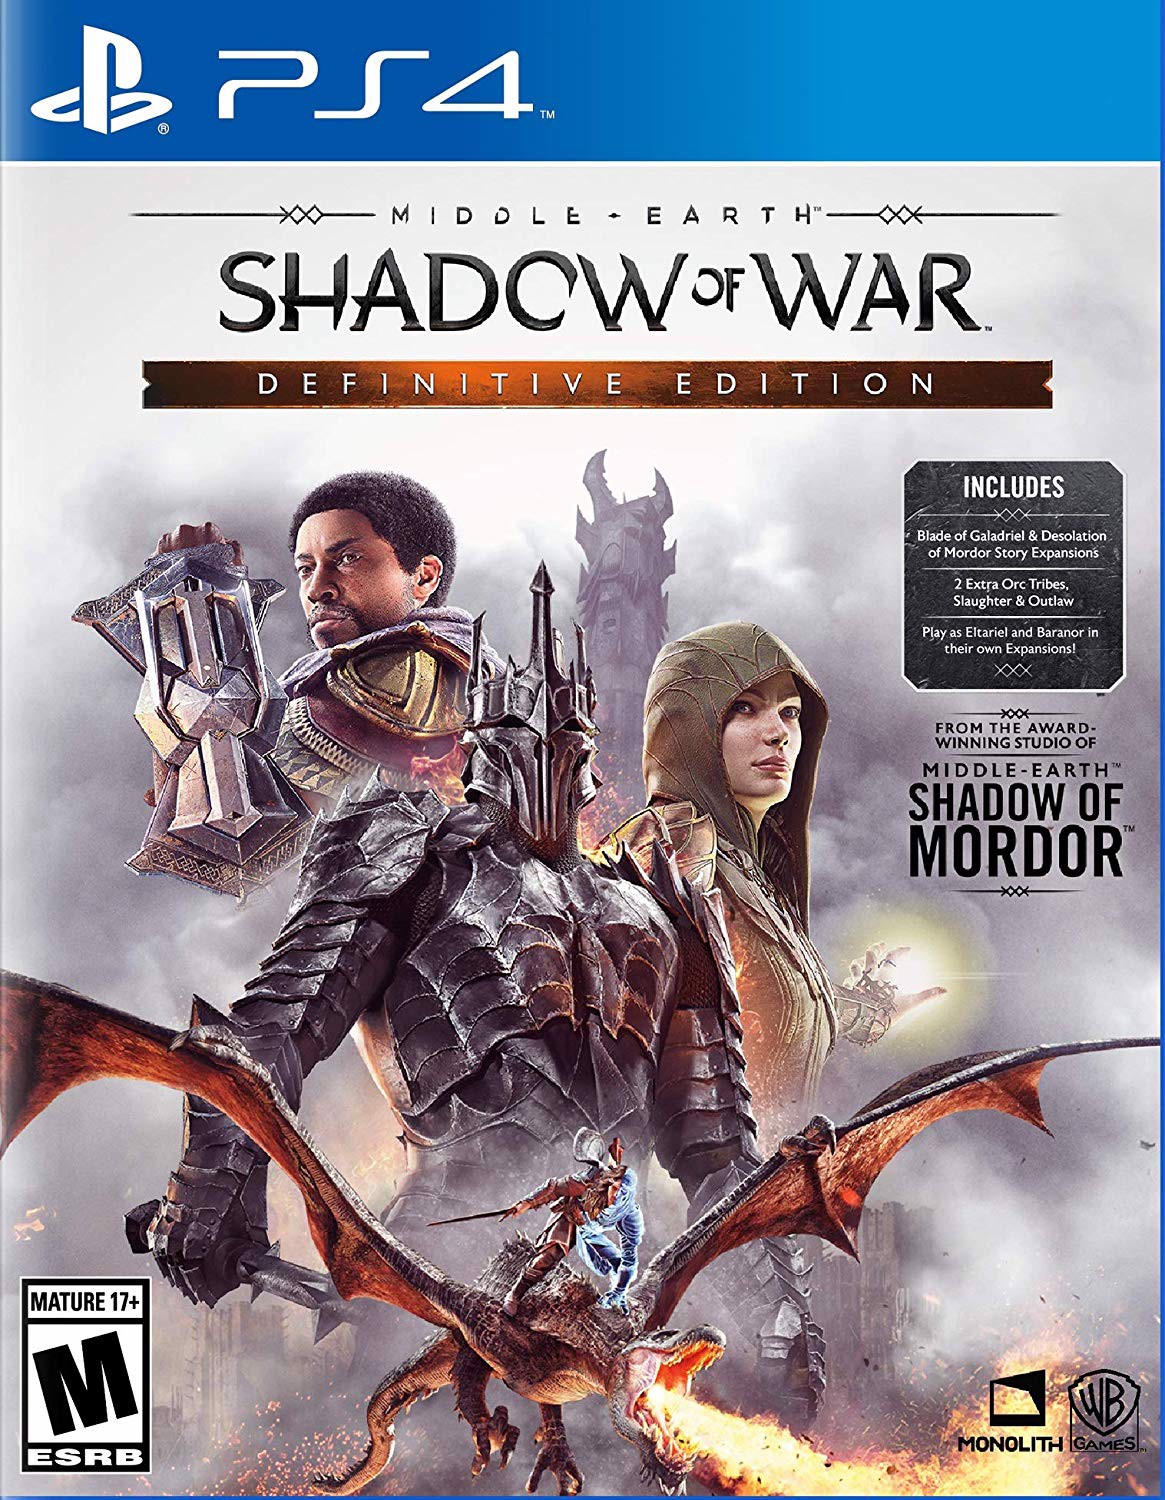 631 - Middle-Earth: Shadow of War Definitive Edition